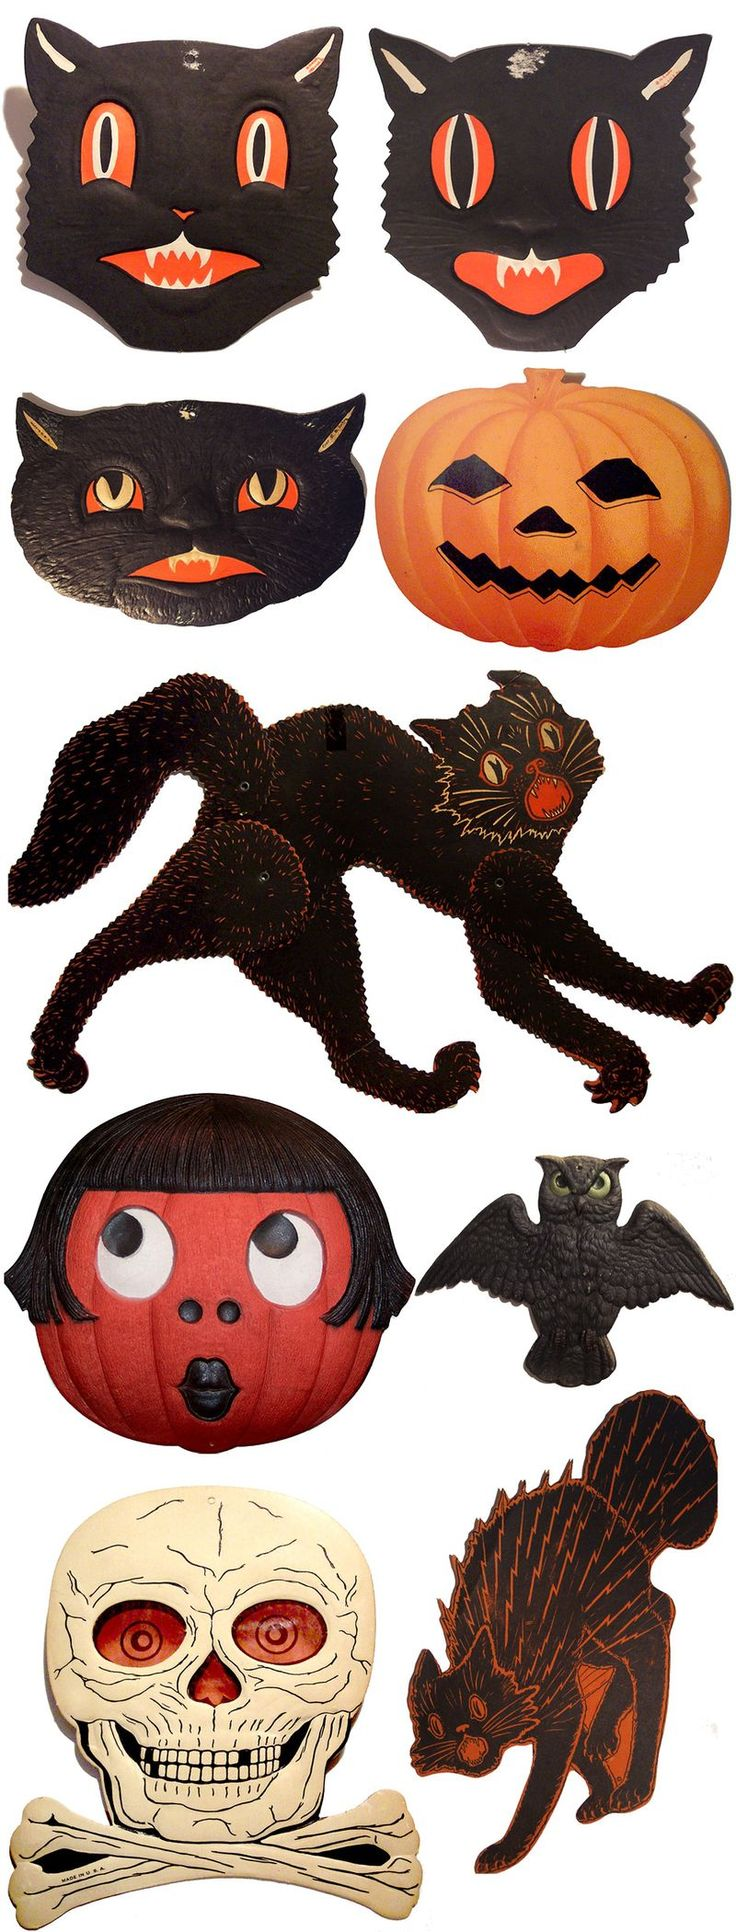 Vintage halloween paper decorations - Find This Pin And More On Halloween Old Time Decor A Fantastic Collection Of Vintage Paper